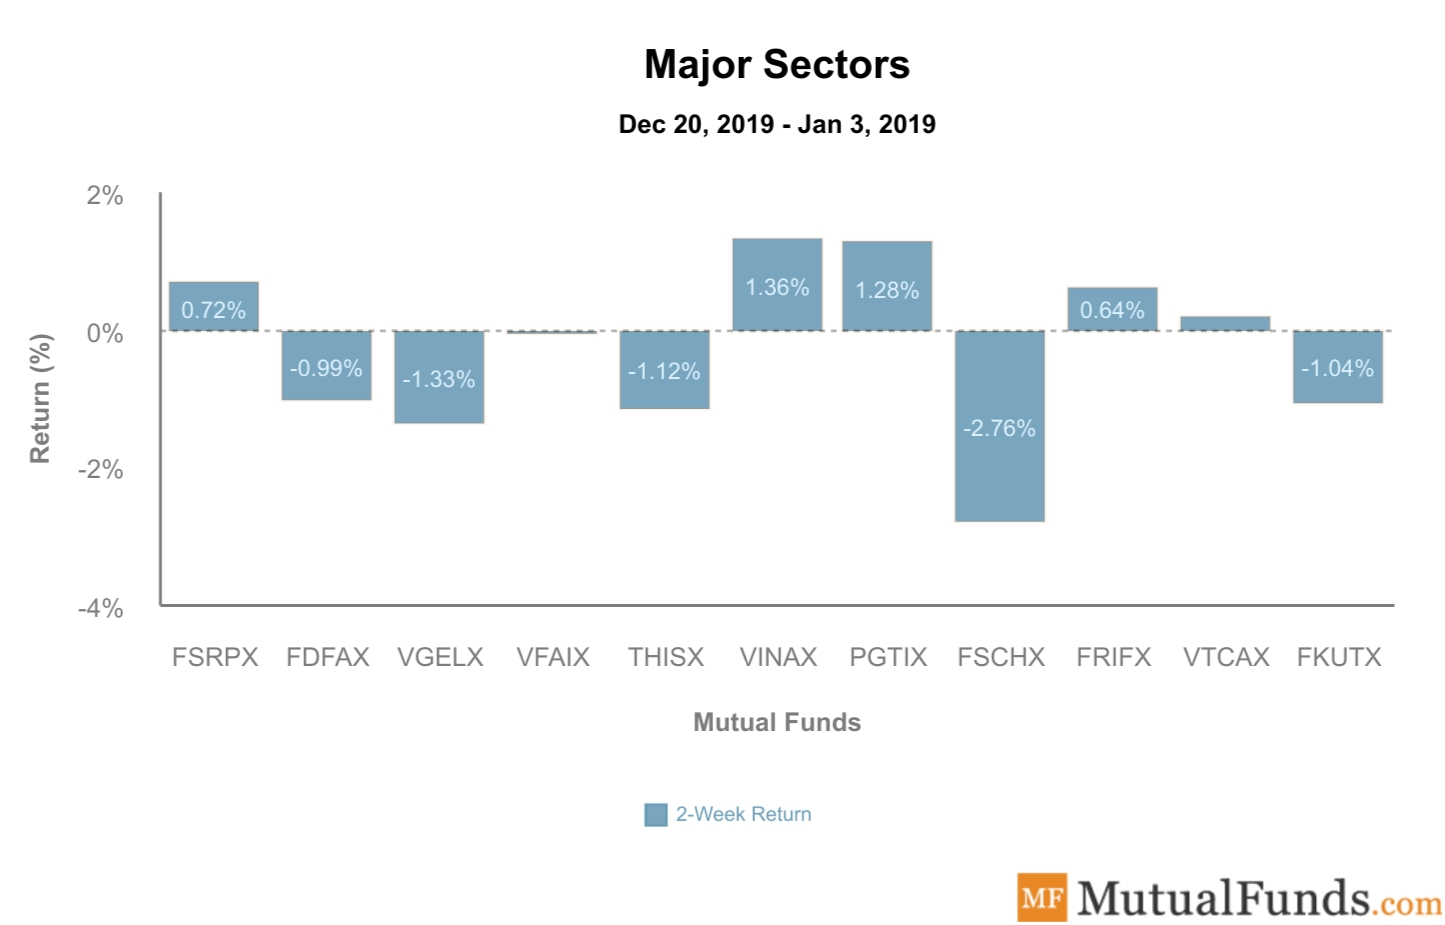 Major Sectors Performance Jan 7, 2020